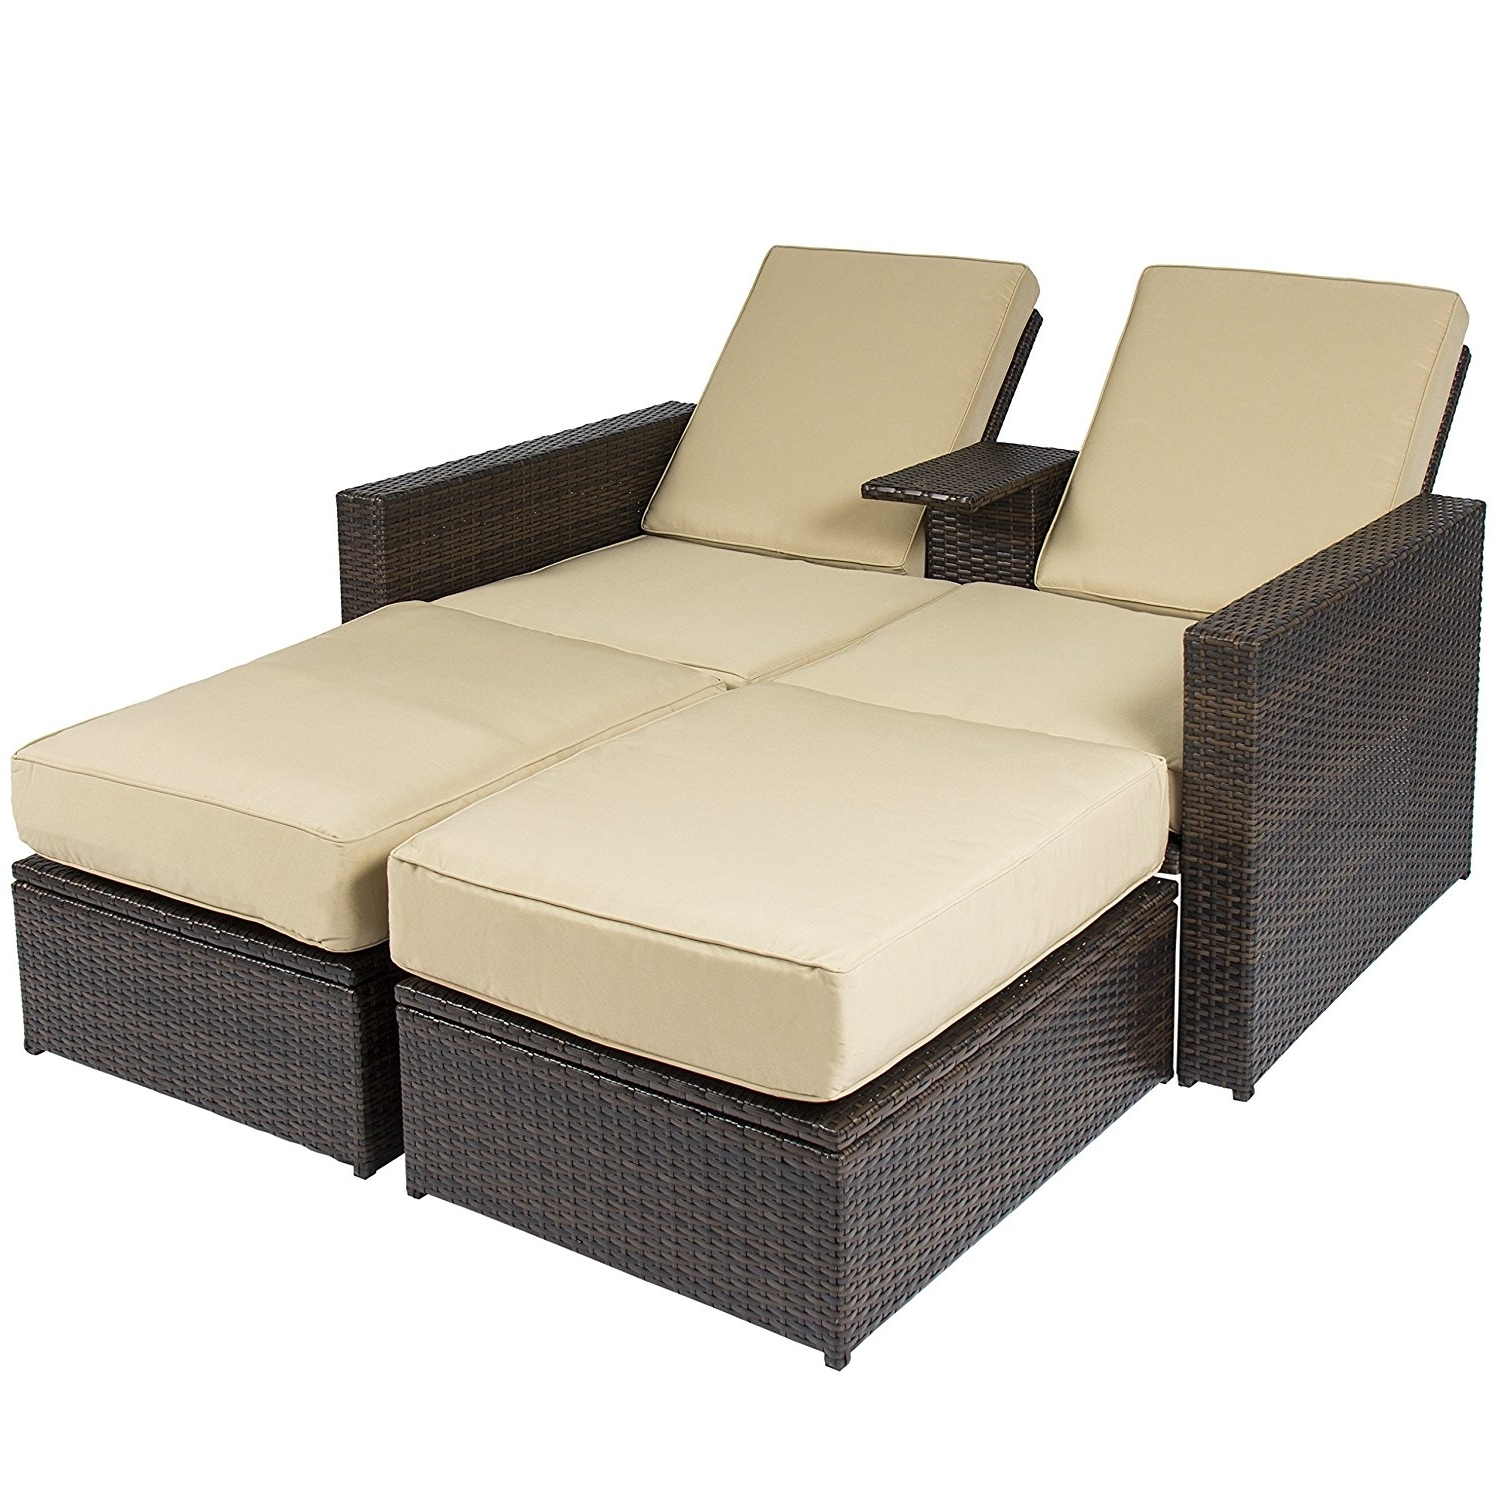 Dual Chaise Lounge Chairs For Current Amazon : Best Choice Products Outdoor 3Pc Rattan Wicker Patio (View 5 of 15)